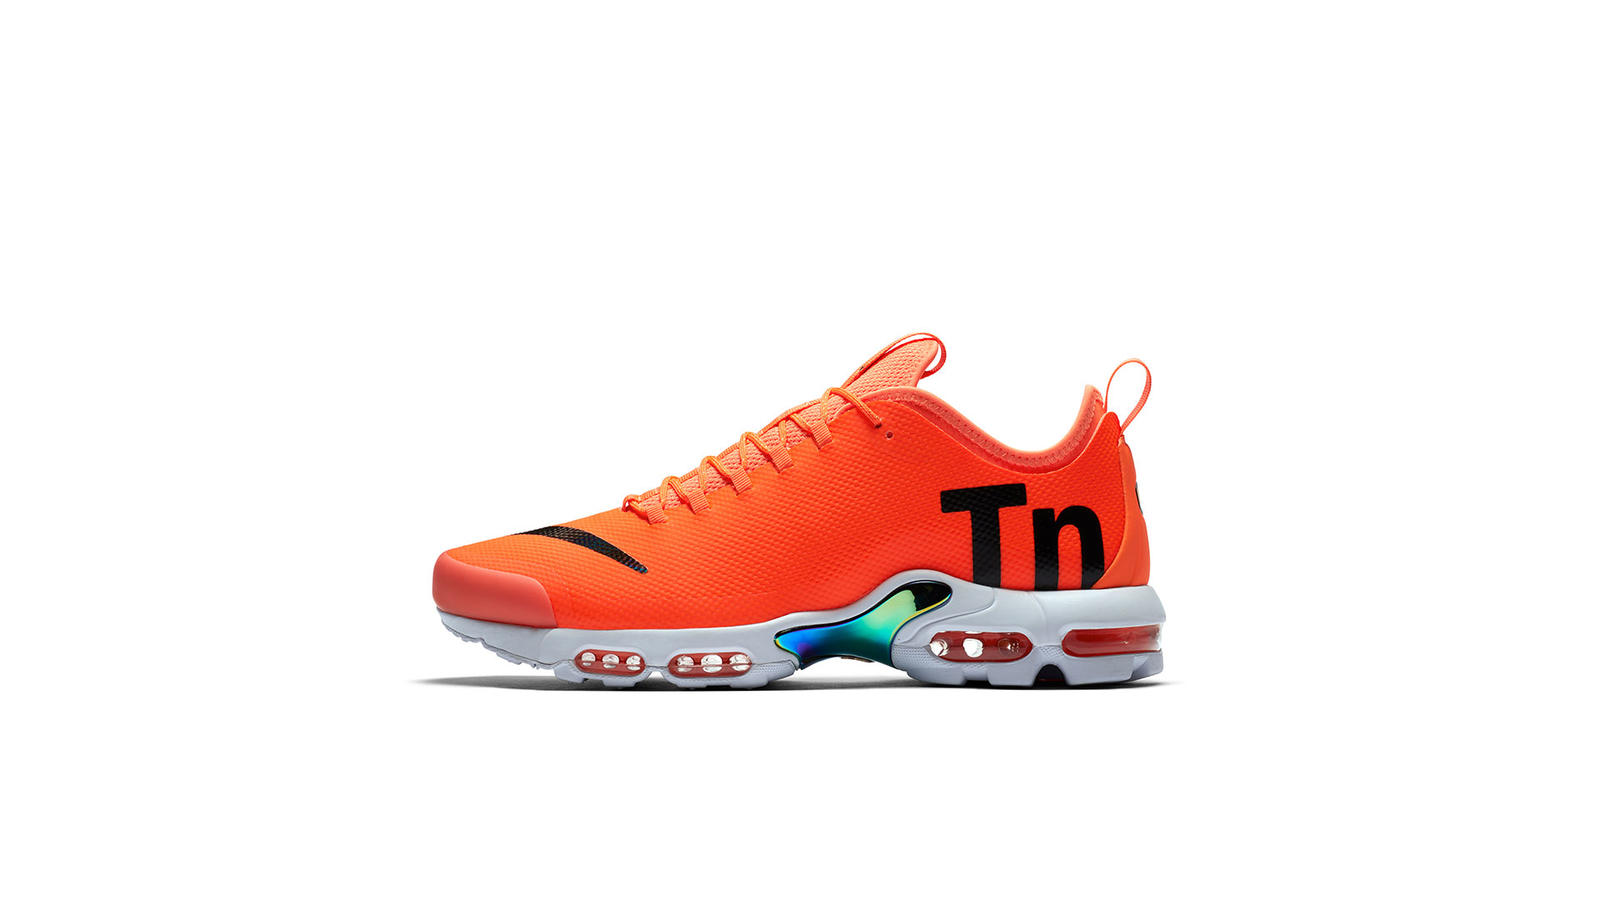 Nike TN Air Max Plus Navy Orange : Release date, Price & Info